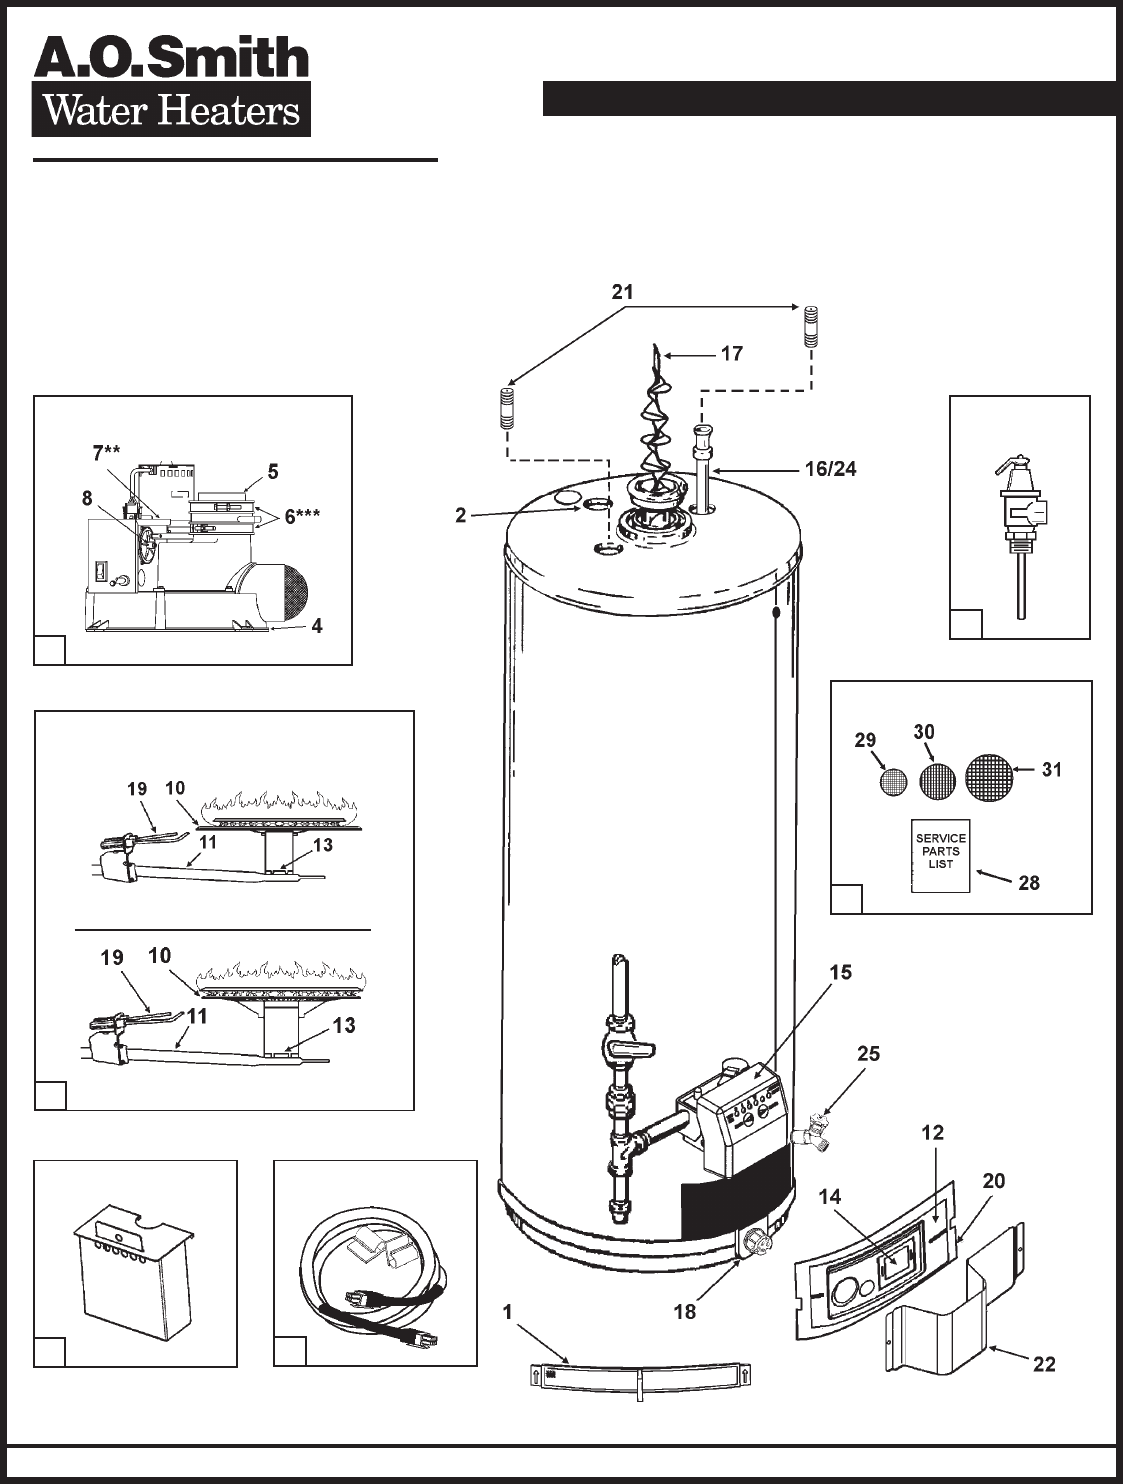 04728953 d81e 45f0 b07b fa818132f595 bg1 a o smith water heater gpvh 40 user guide manualsonline com ao smith water heater wiring diagram at nearapp.co